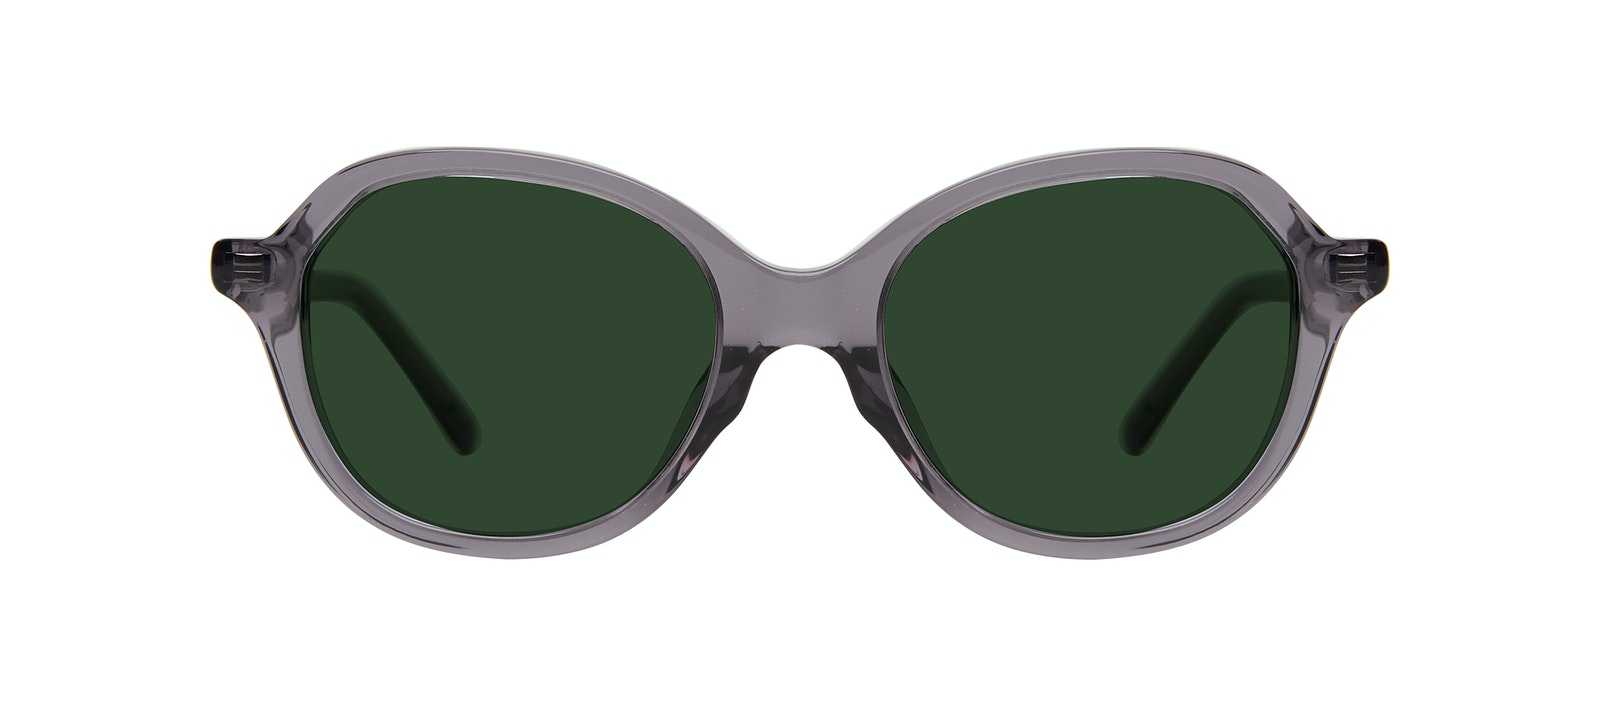 Affordable Fashion Glasses Square Sunglasses Kids Stage Junior Grey Front